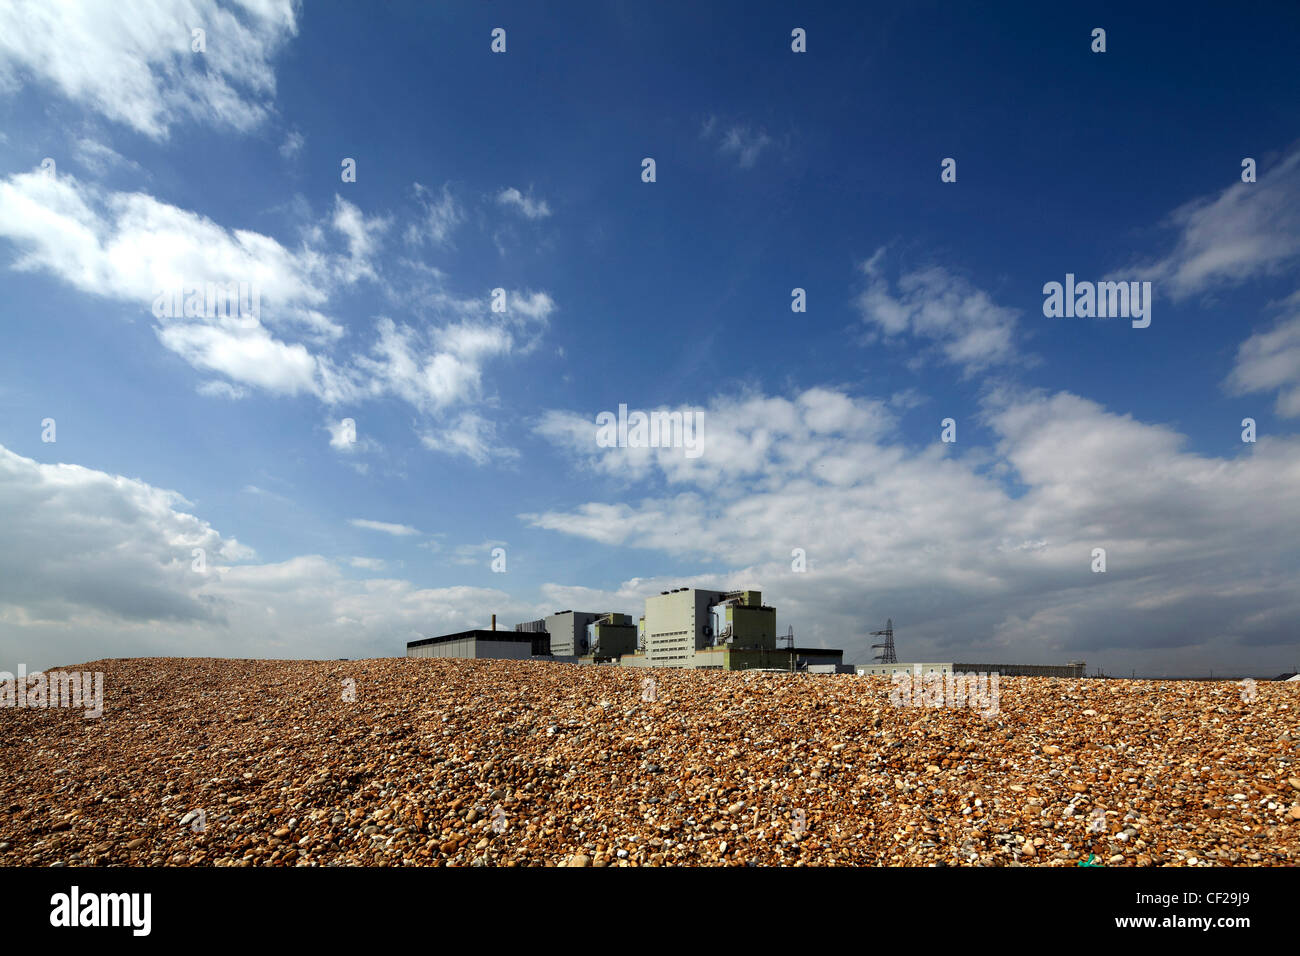 Dungeness nuclear power station on the Kent coast. - Stock Image